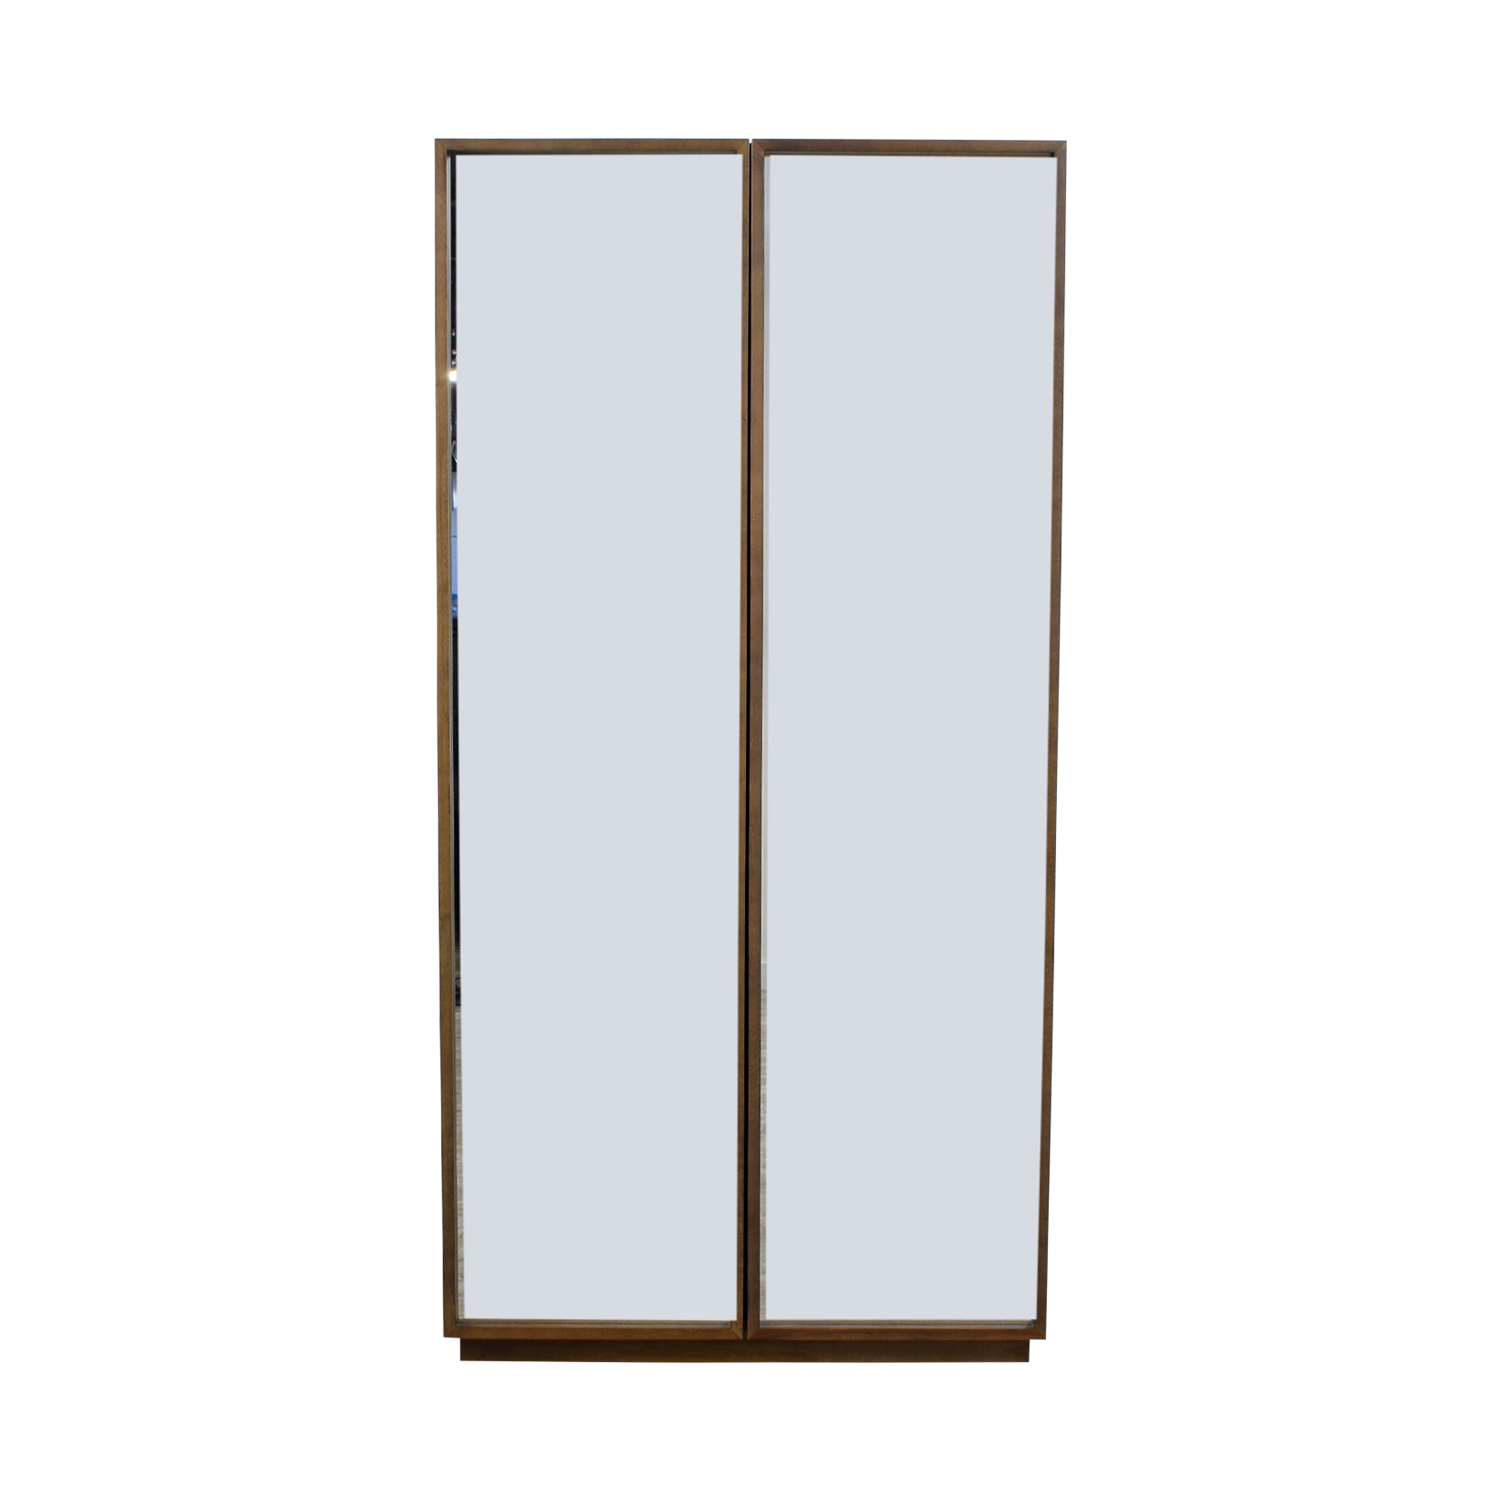 CB2 CB2 Mirrored Armoire with Shelves second hand